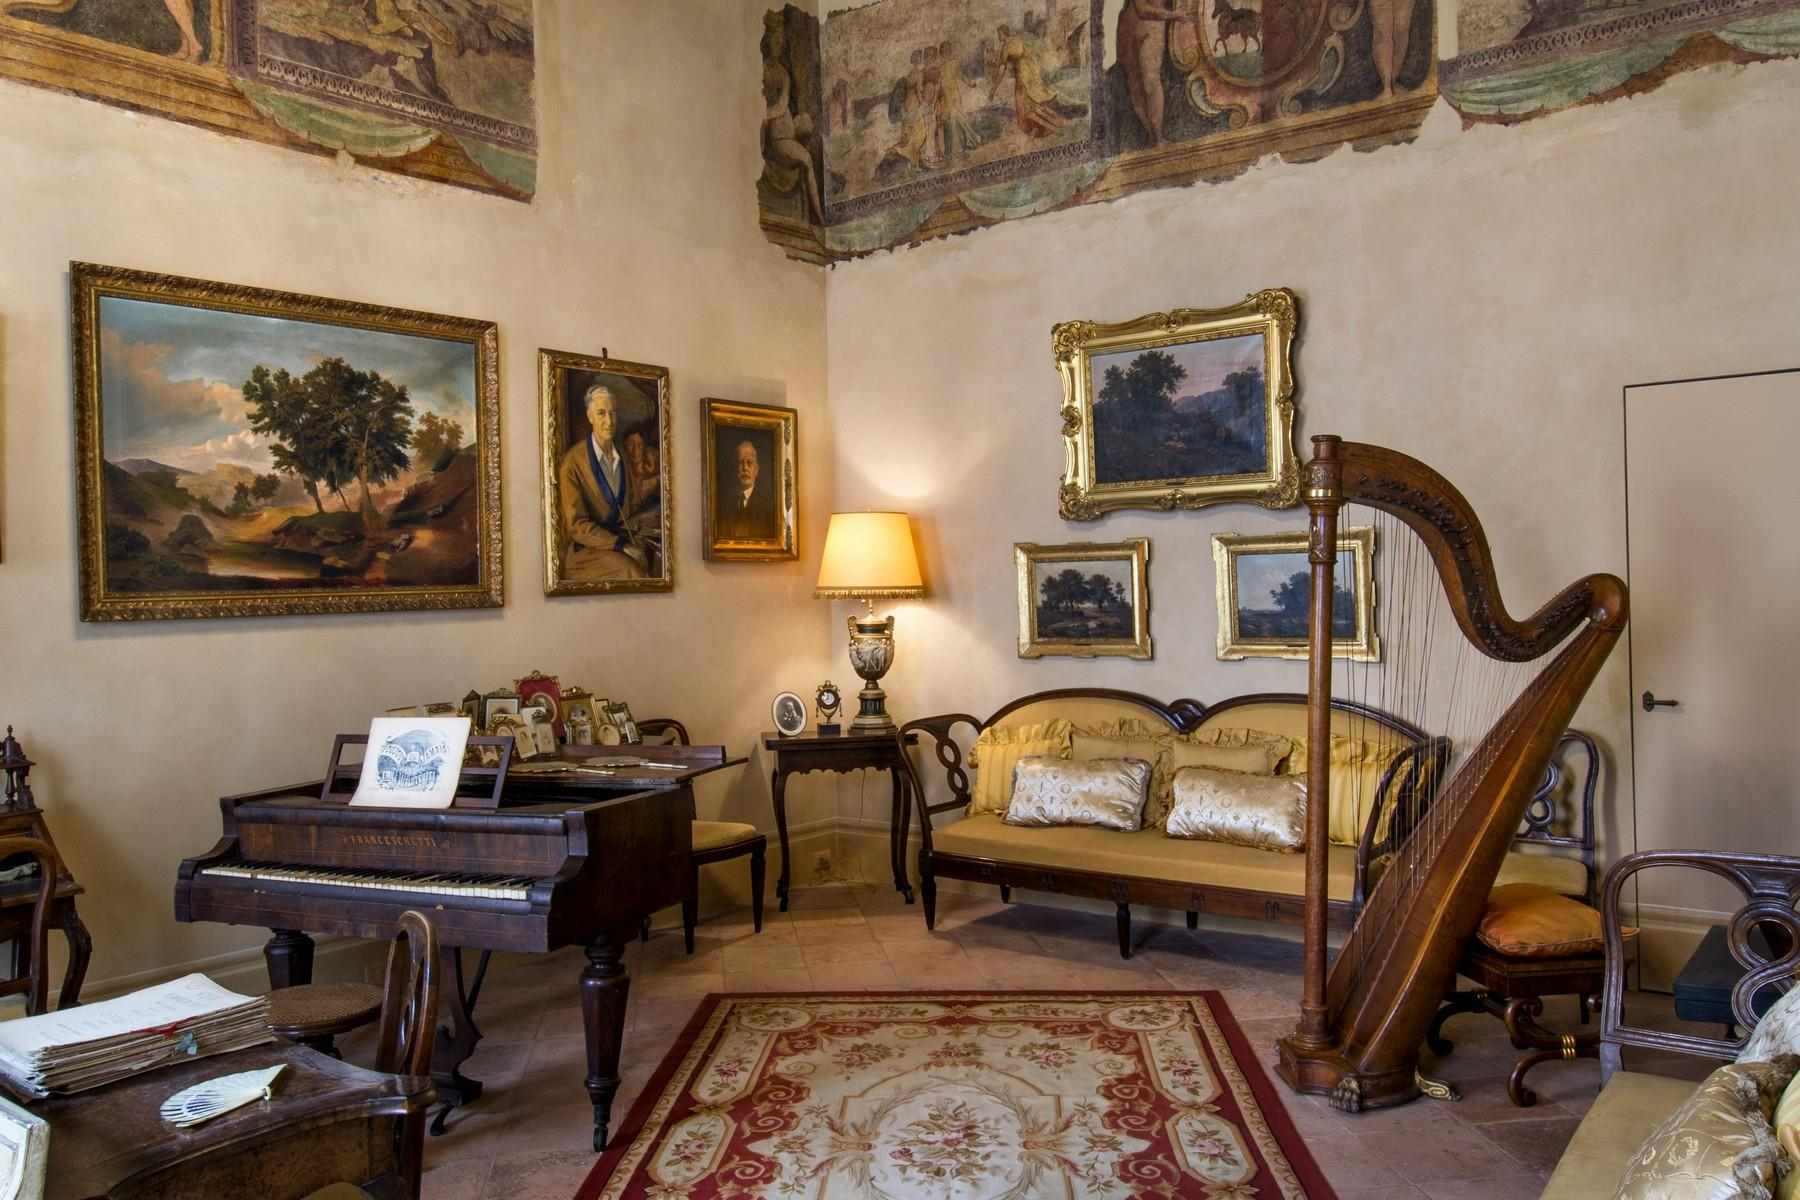 Magnificent historic palace in the heart of Reggio Emilia - 2